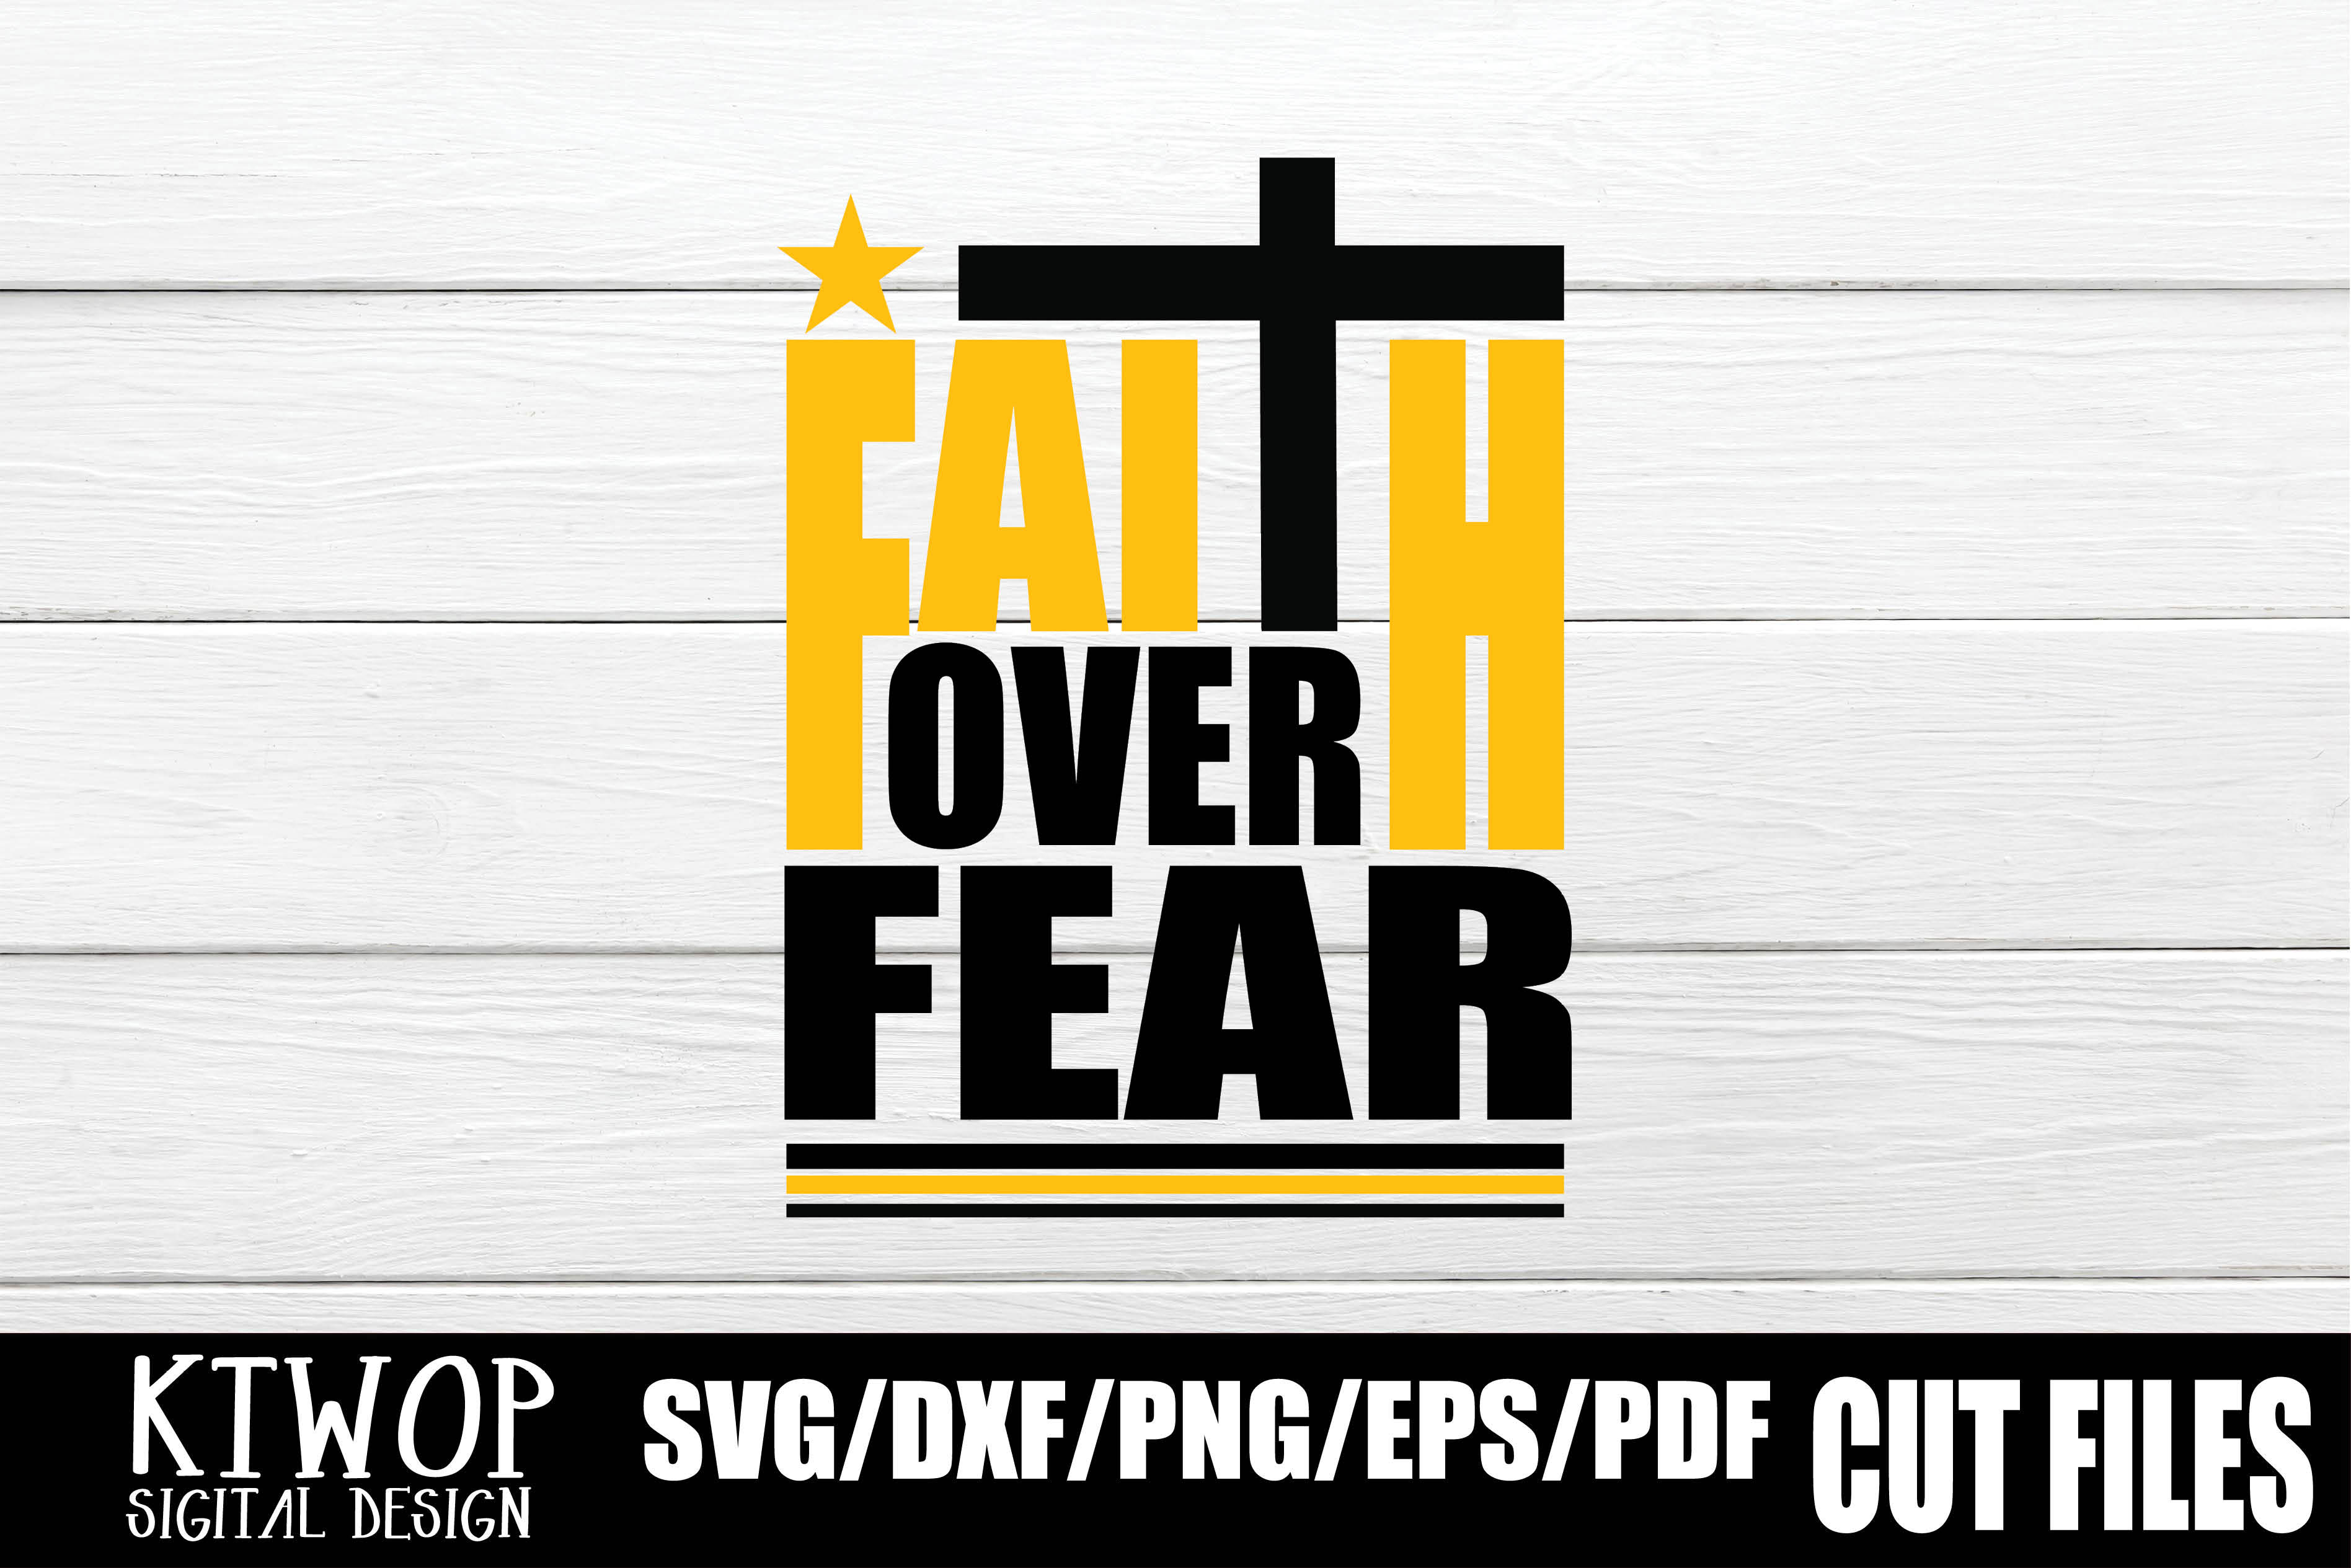 Download Free Faith Over Fear 2020 Graphic By Ktwop Creative Fabrica for Cricut Explore, Silhouette and other cutting machines.